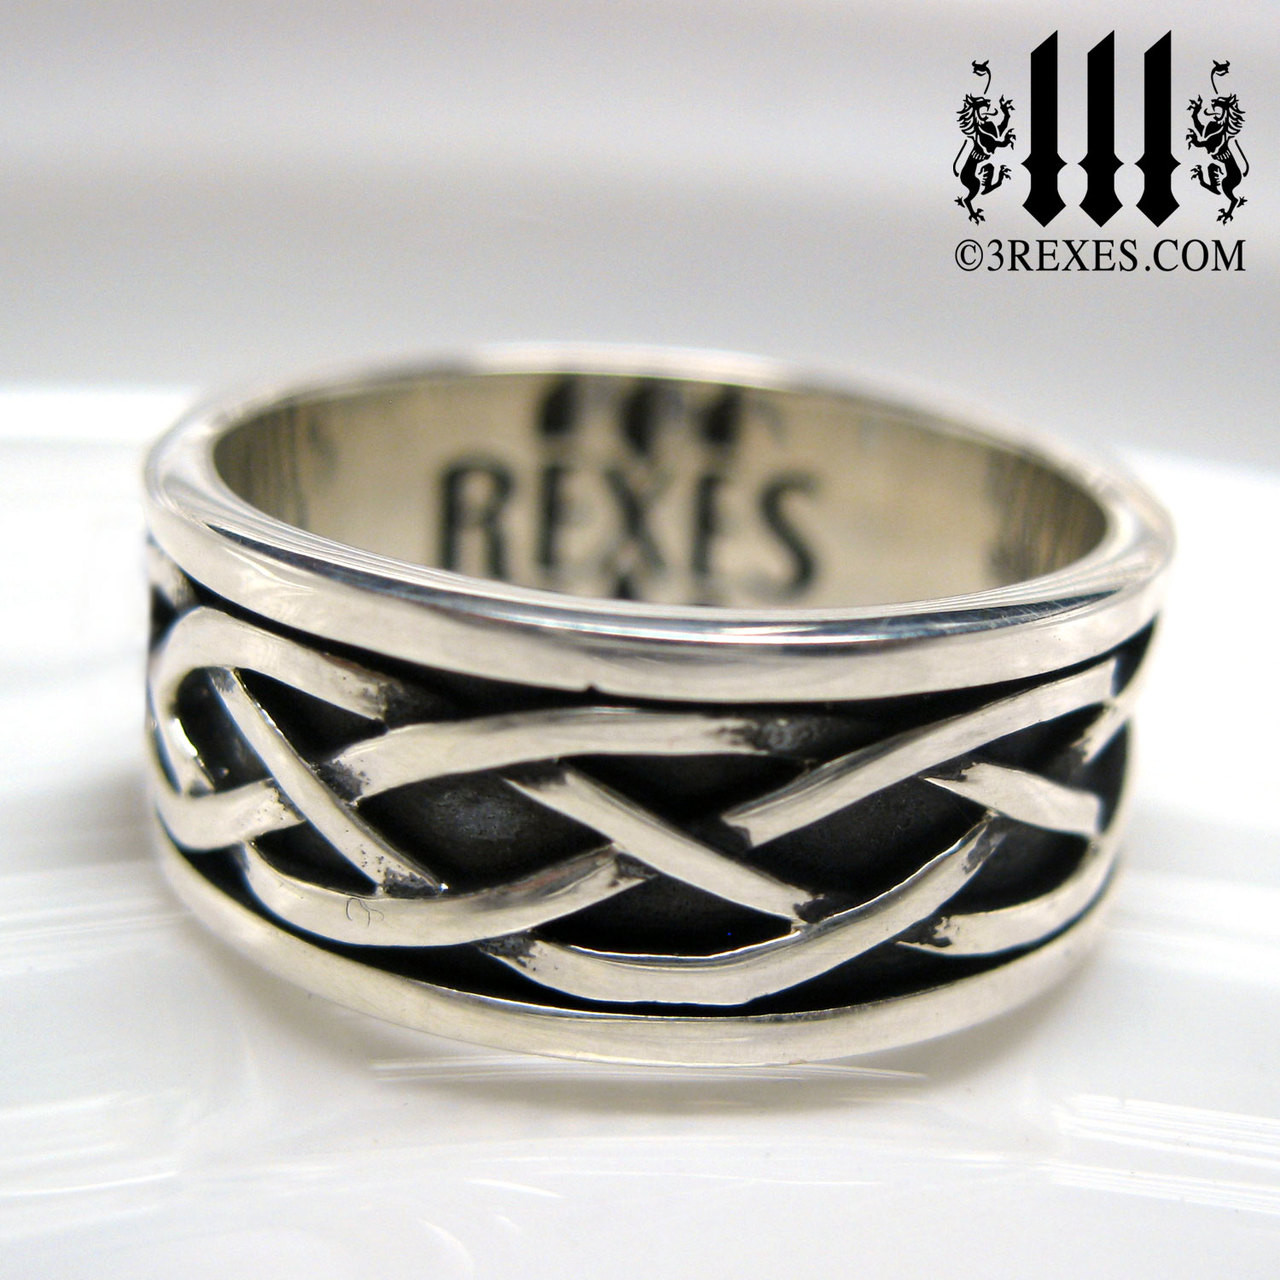 This is a graphic of Celtic Soul Silver Knot Ring Gothic Wedding Band For Men And Women